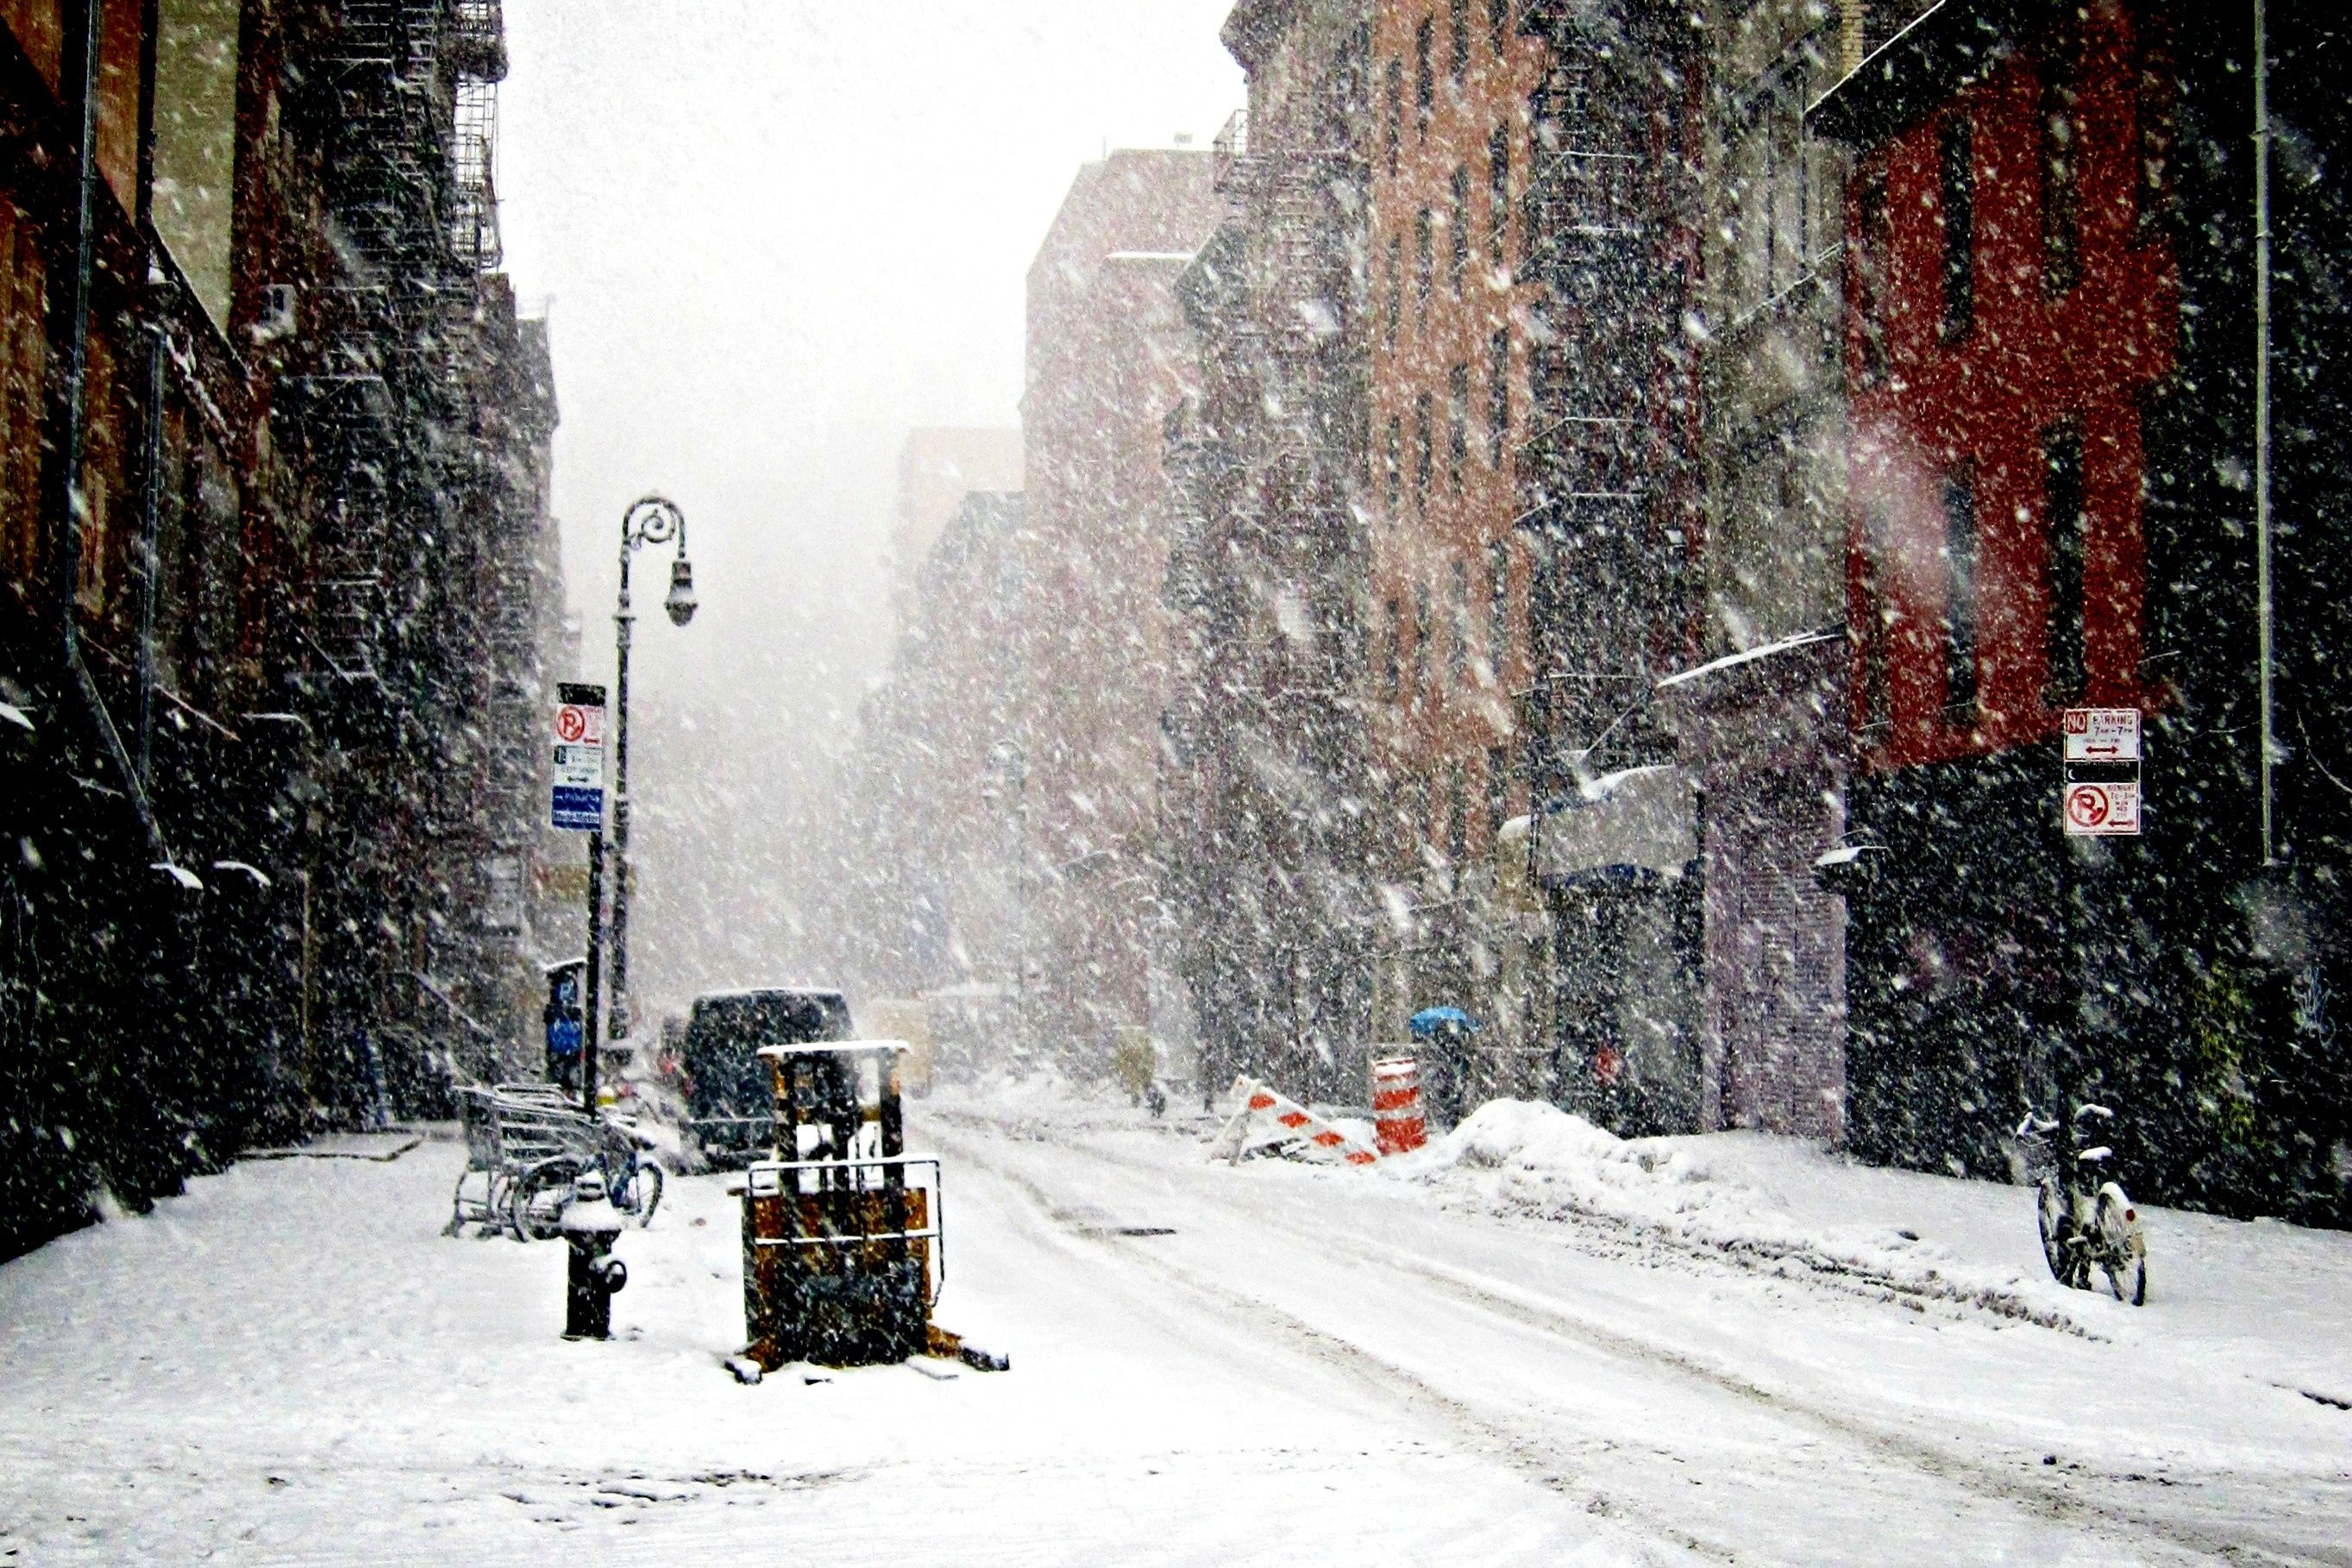 Snow Winter New York New York Wallpaper Background Cool Places To Visit New York Snow City Winter